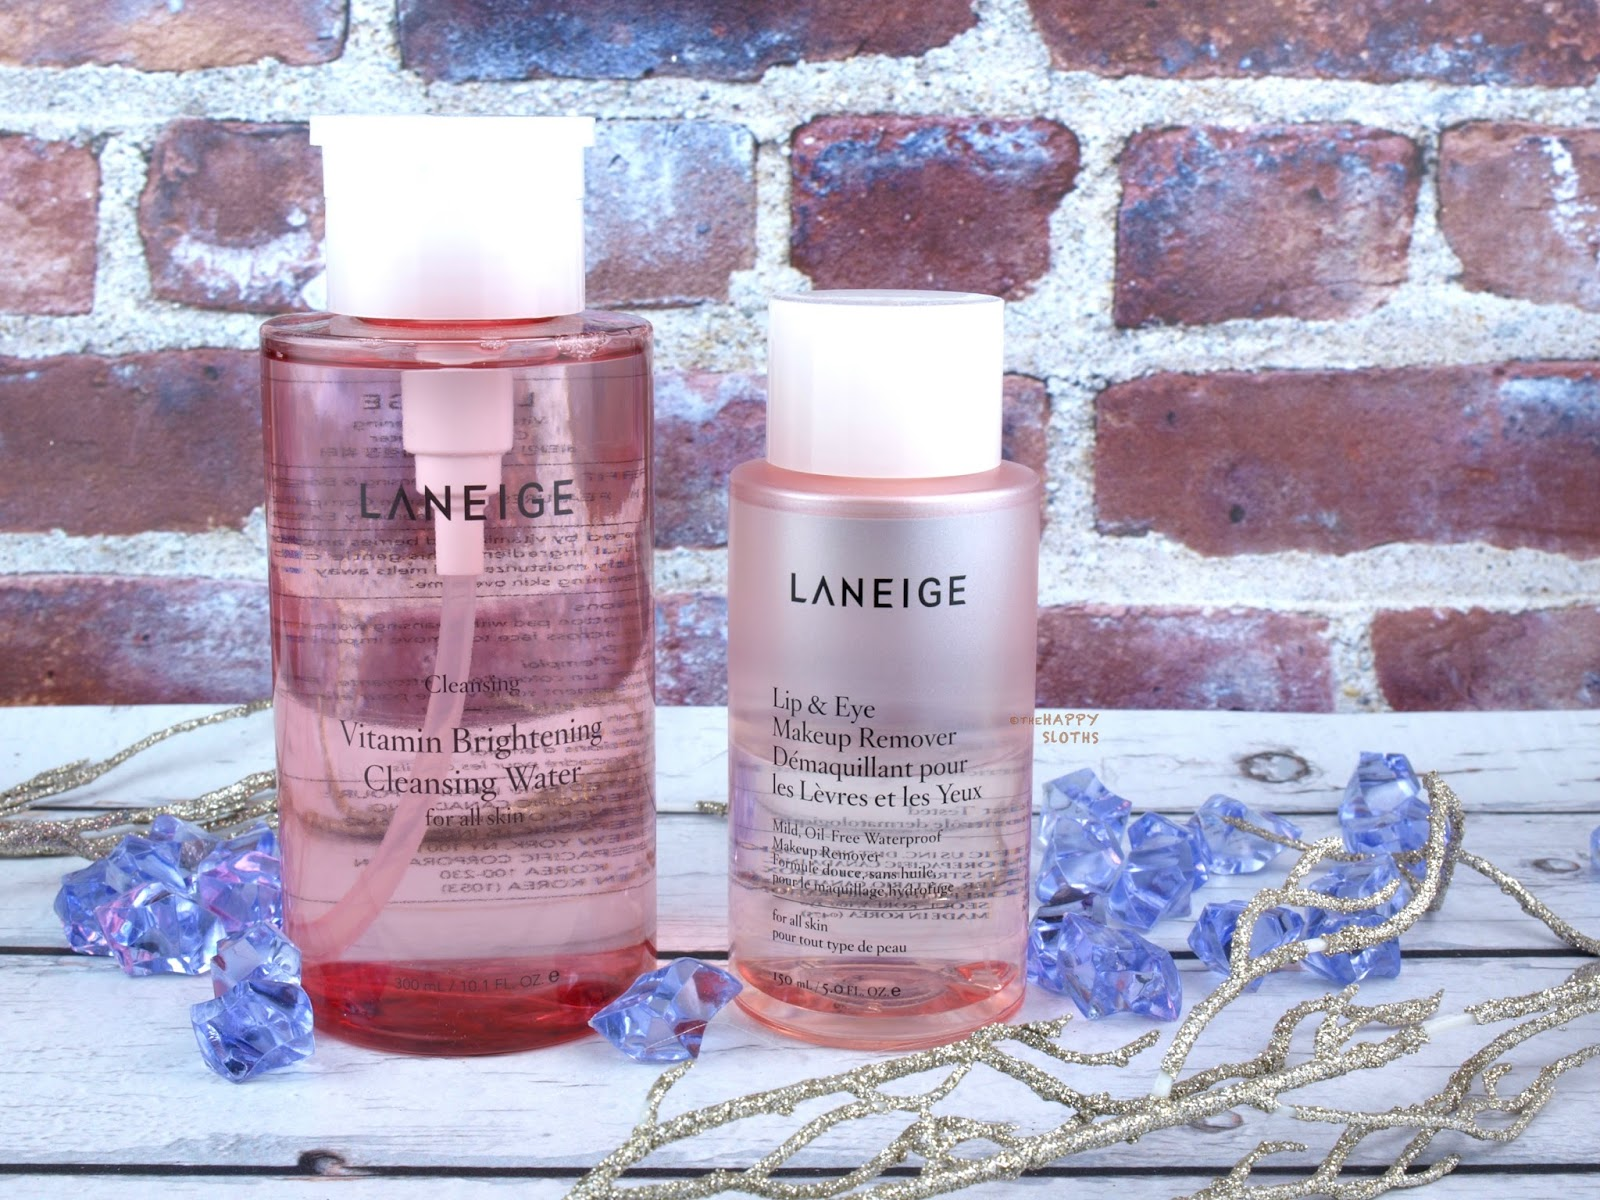 LANEIGE Lip & Eye Makeup Remover and Vitamin Brightening Cleansing Water: Review